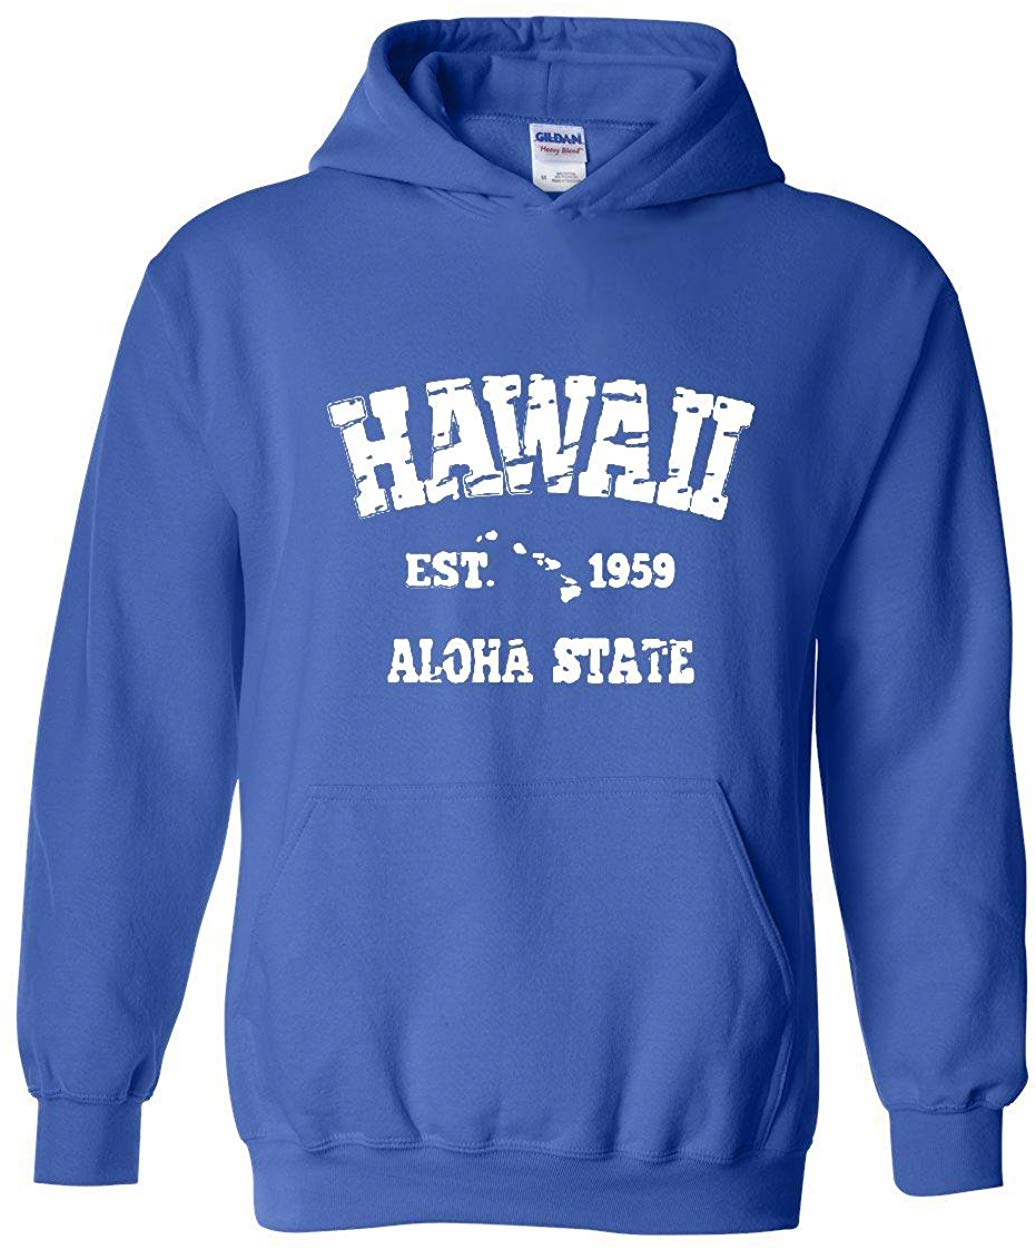 Hawaii Hoodie Hawaiian Islands 1959 Places To Travel In Aloha State Hi Honolulu Kauai Maui OAHU Unisex Hoodies Sweaterunisex image